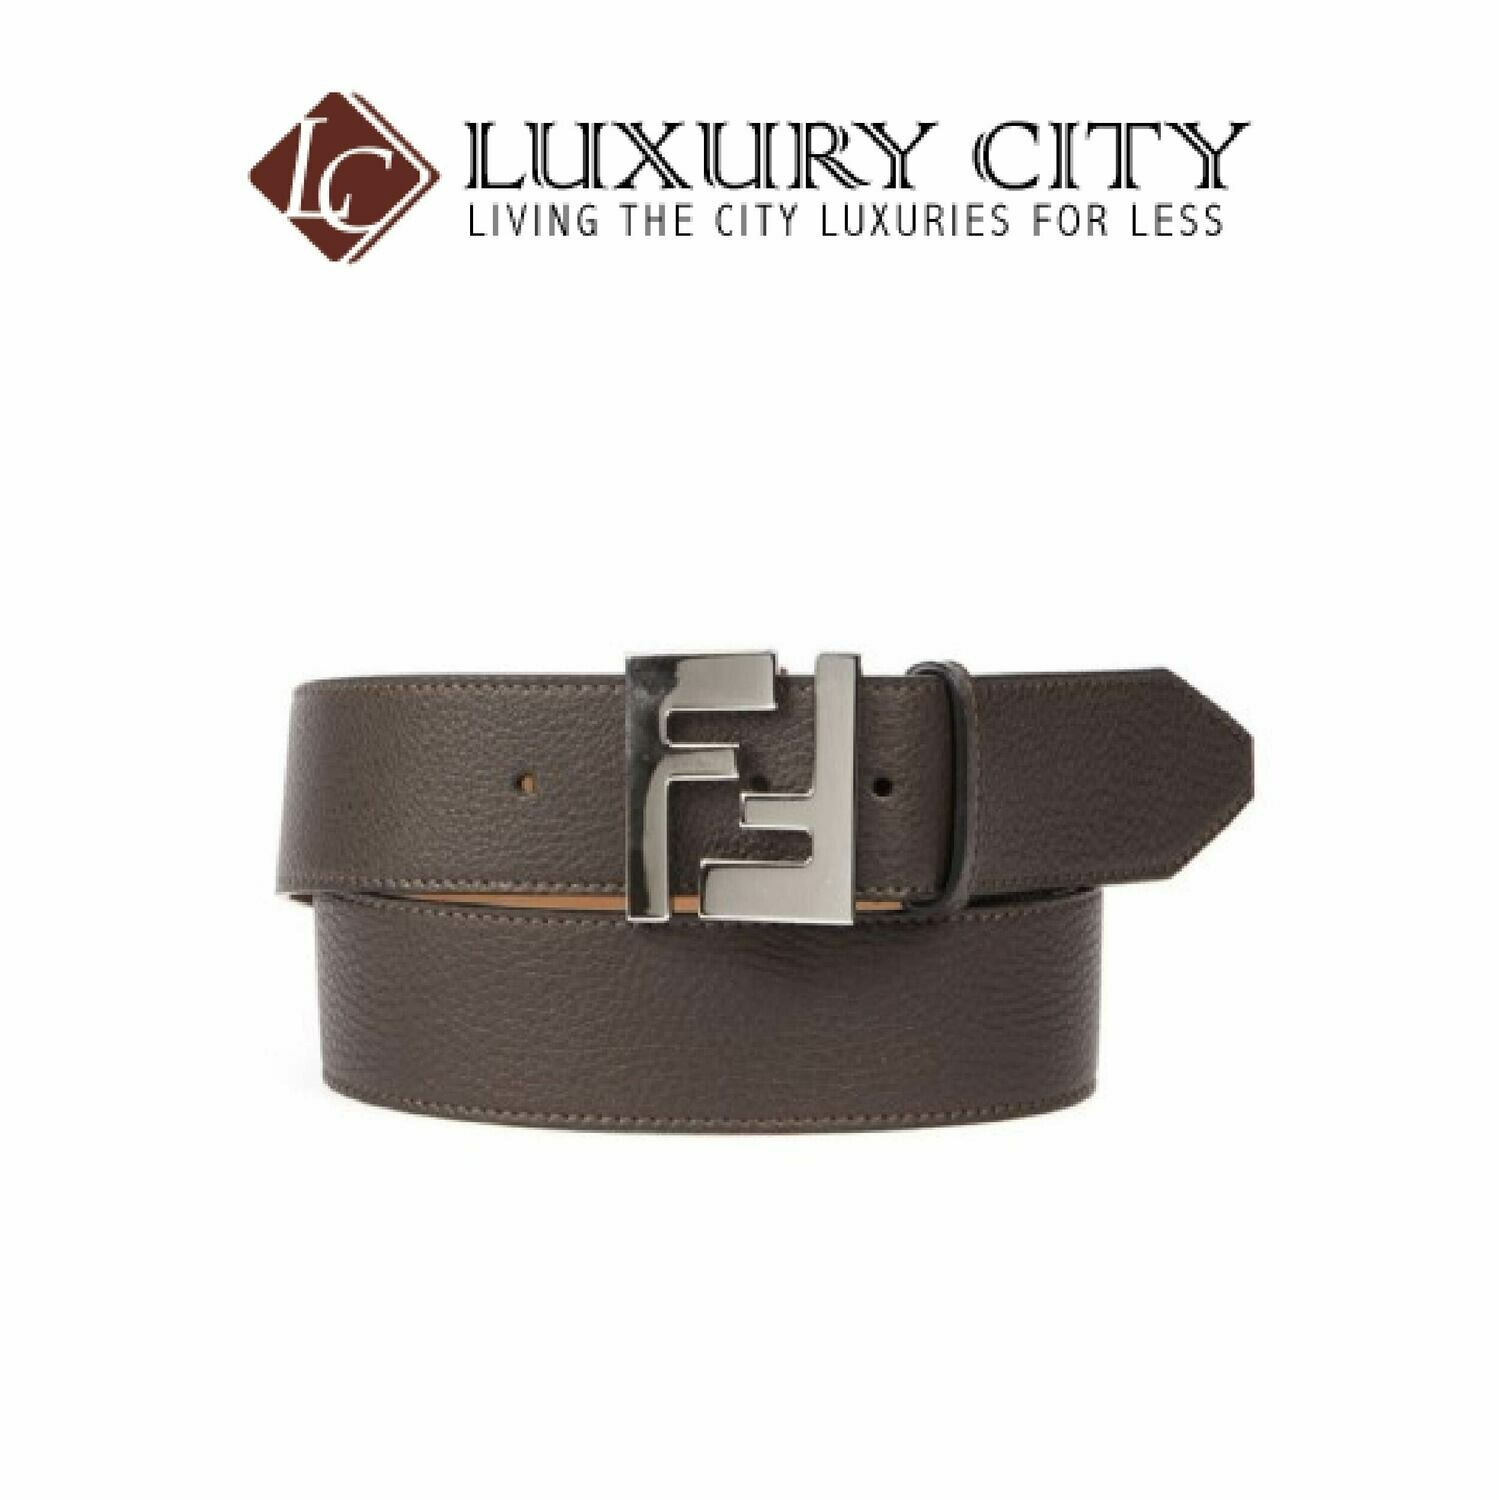 [Luxury City] Fendi Leather Belt Brown Fendi-7C0403